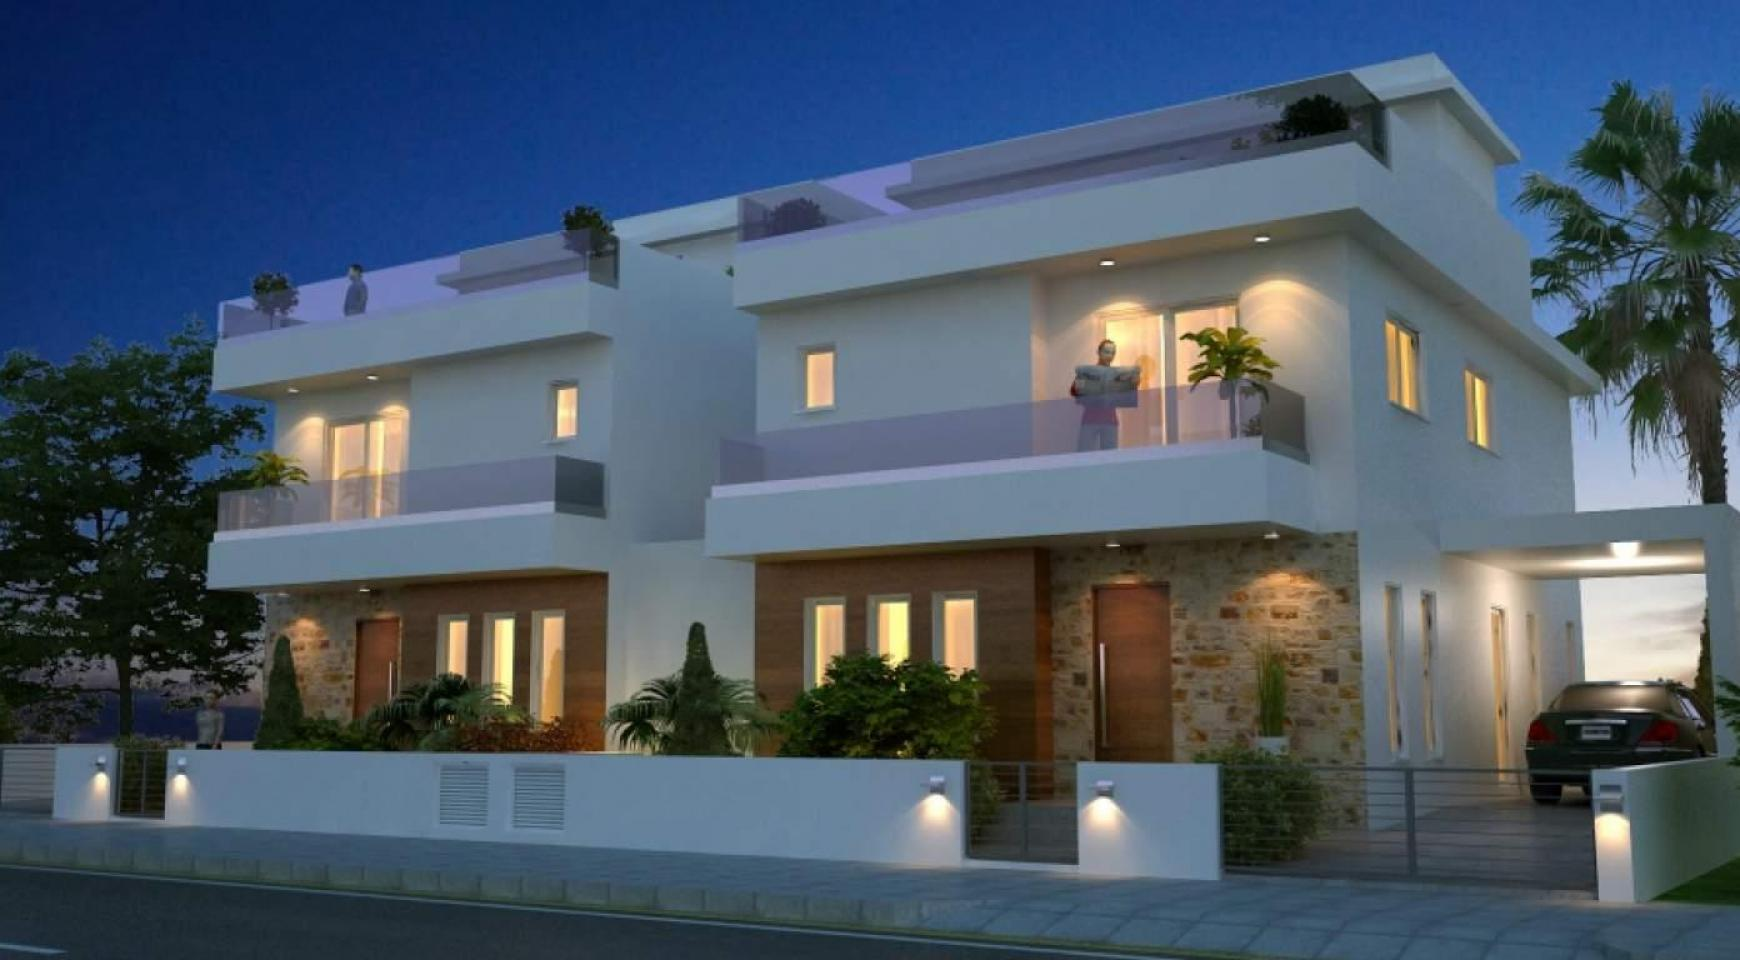 New Modern 4 Bedroom House in Leivadia Area - 3